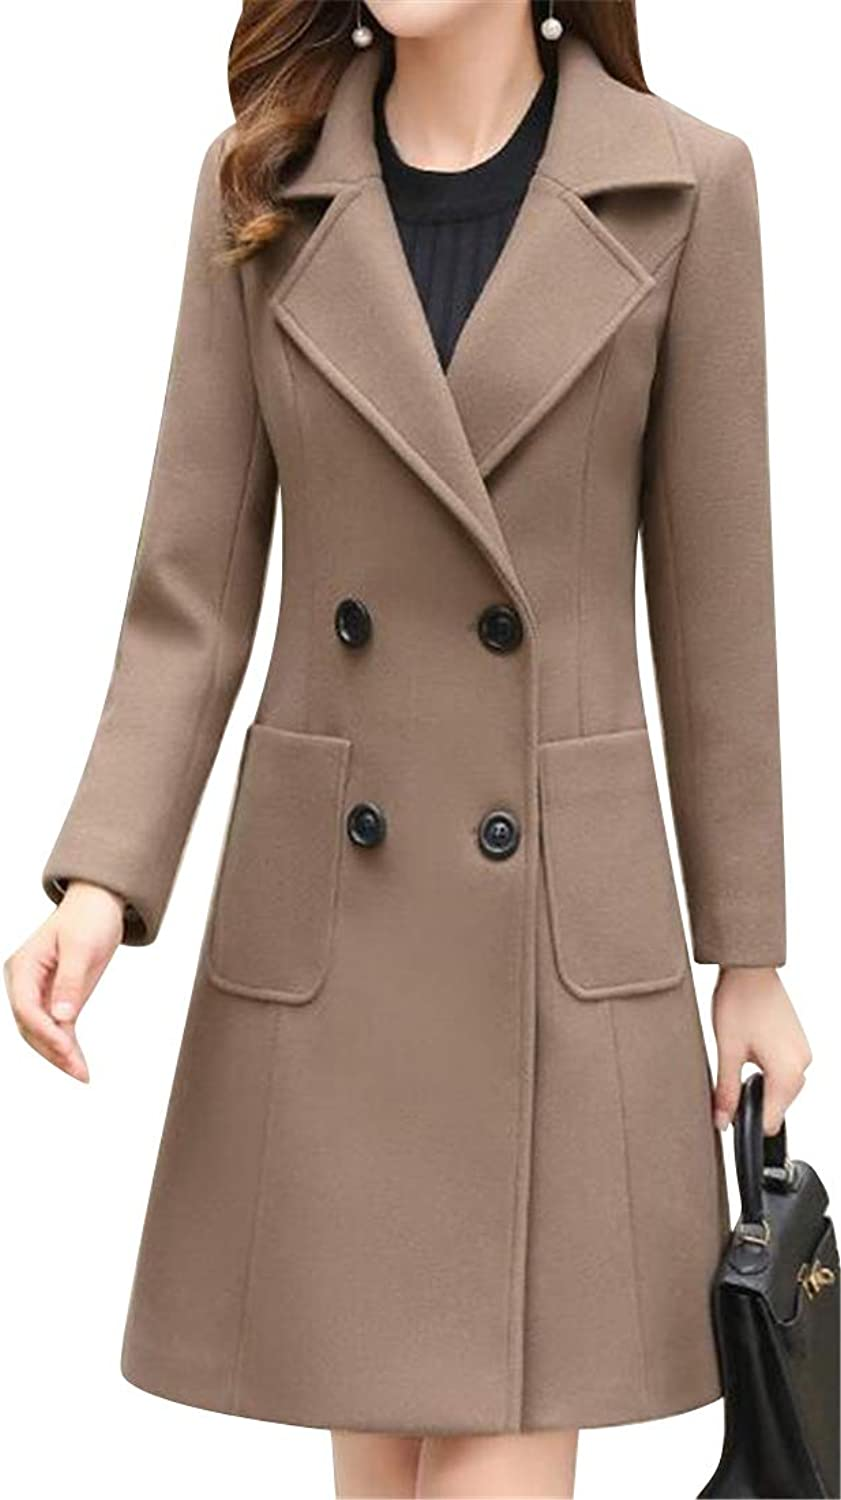 DFBB Women's Double Breasted Solid color Fall Winter Slim Mid Length Wool Blend Trench Coat Jacket Overcoat